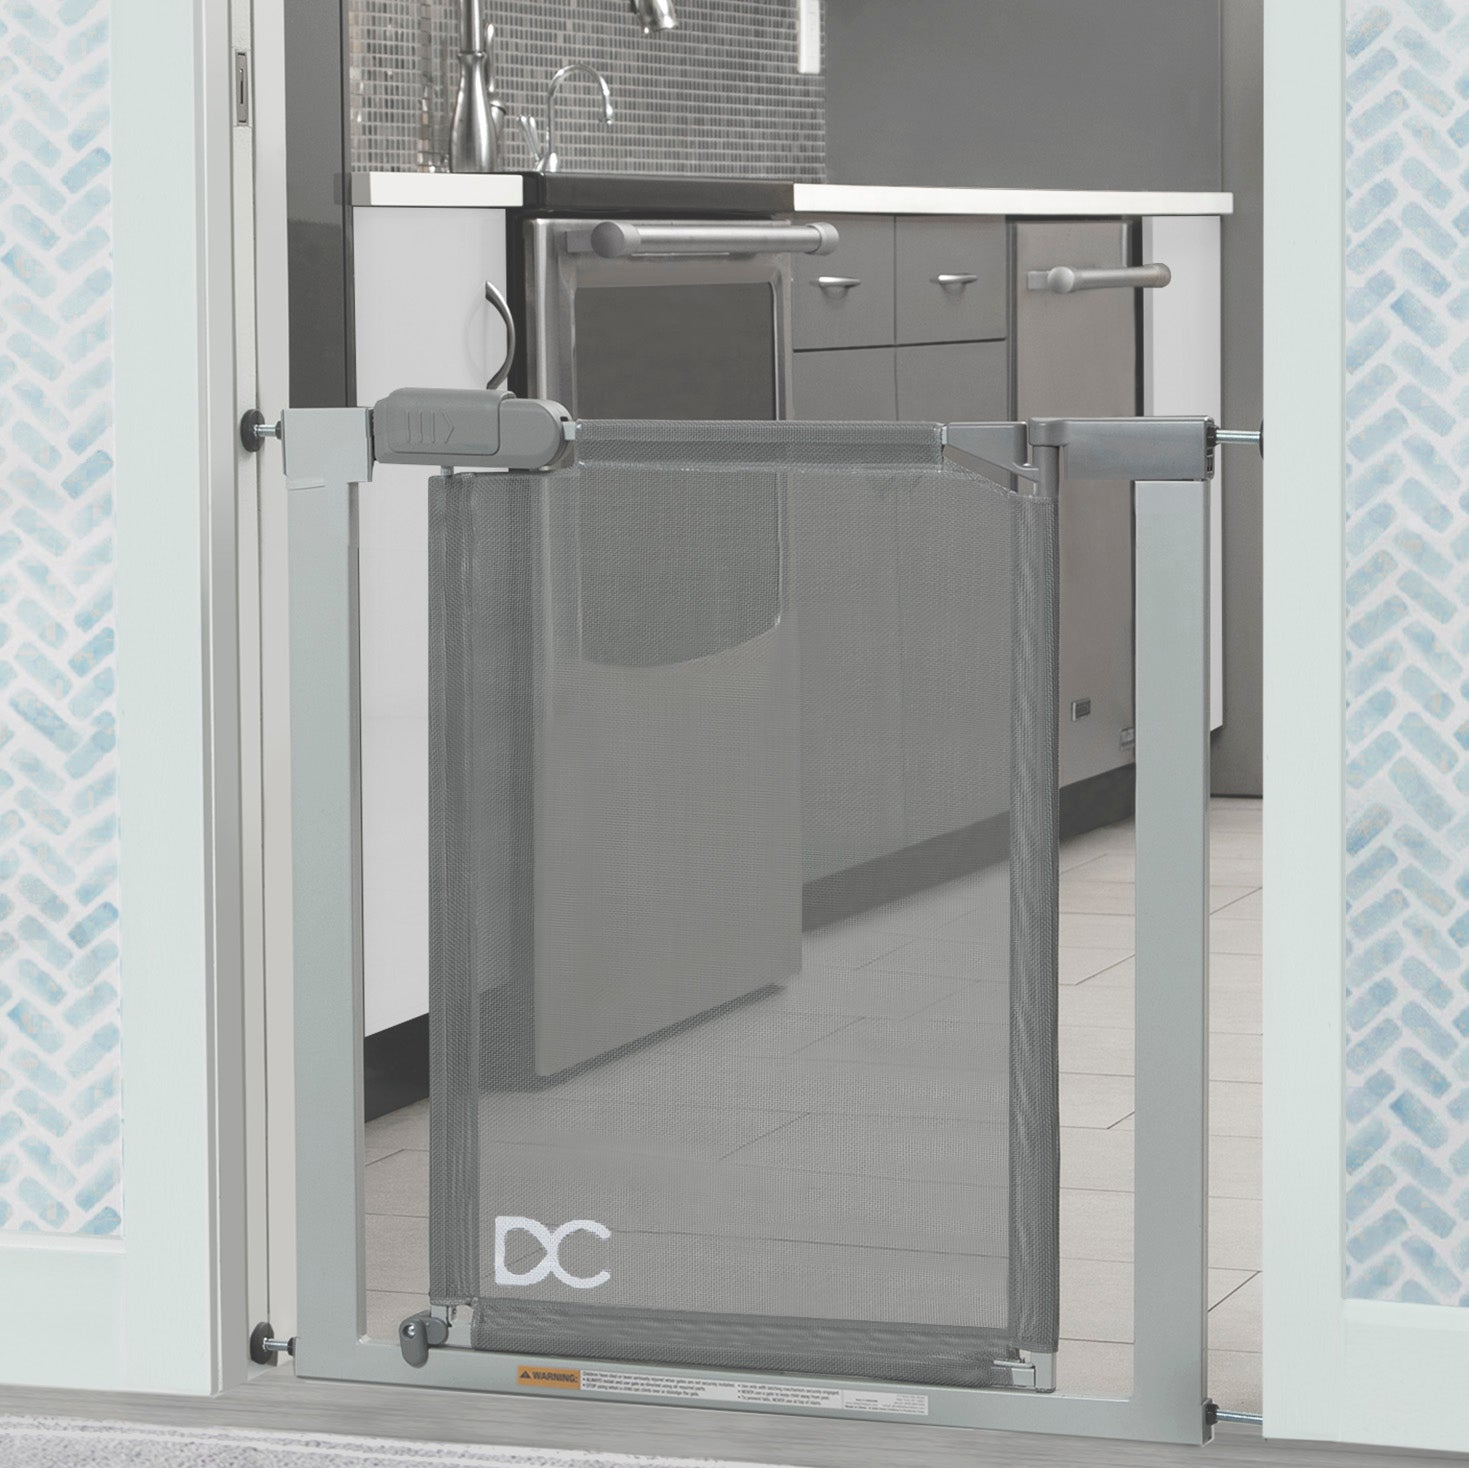 Adjustable Baby Safety Gate - Easy Fit Pressure Mount Design with Walk-Through Door